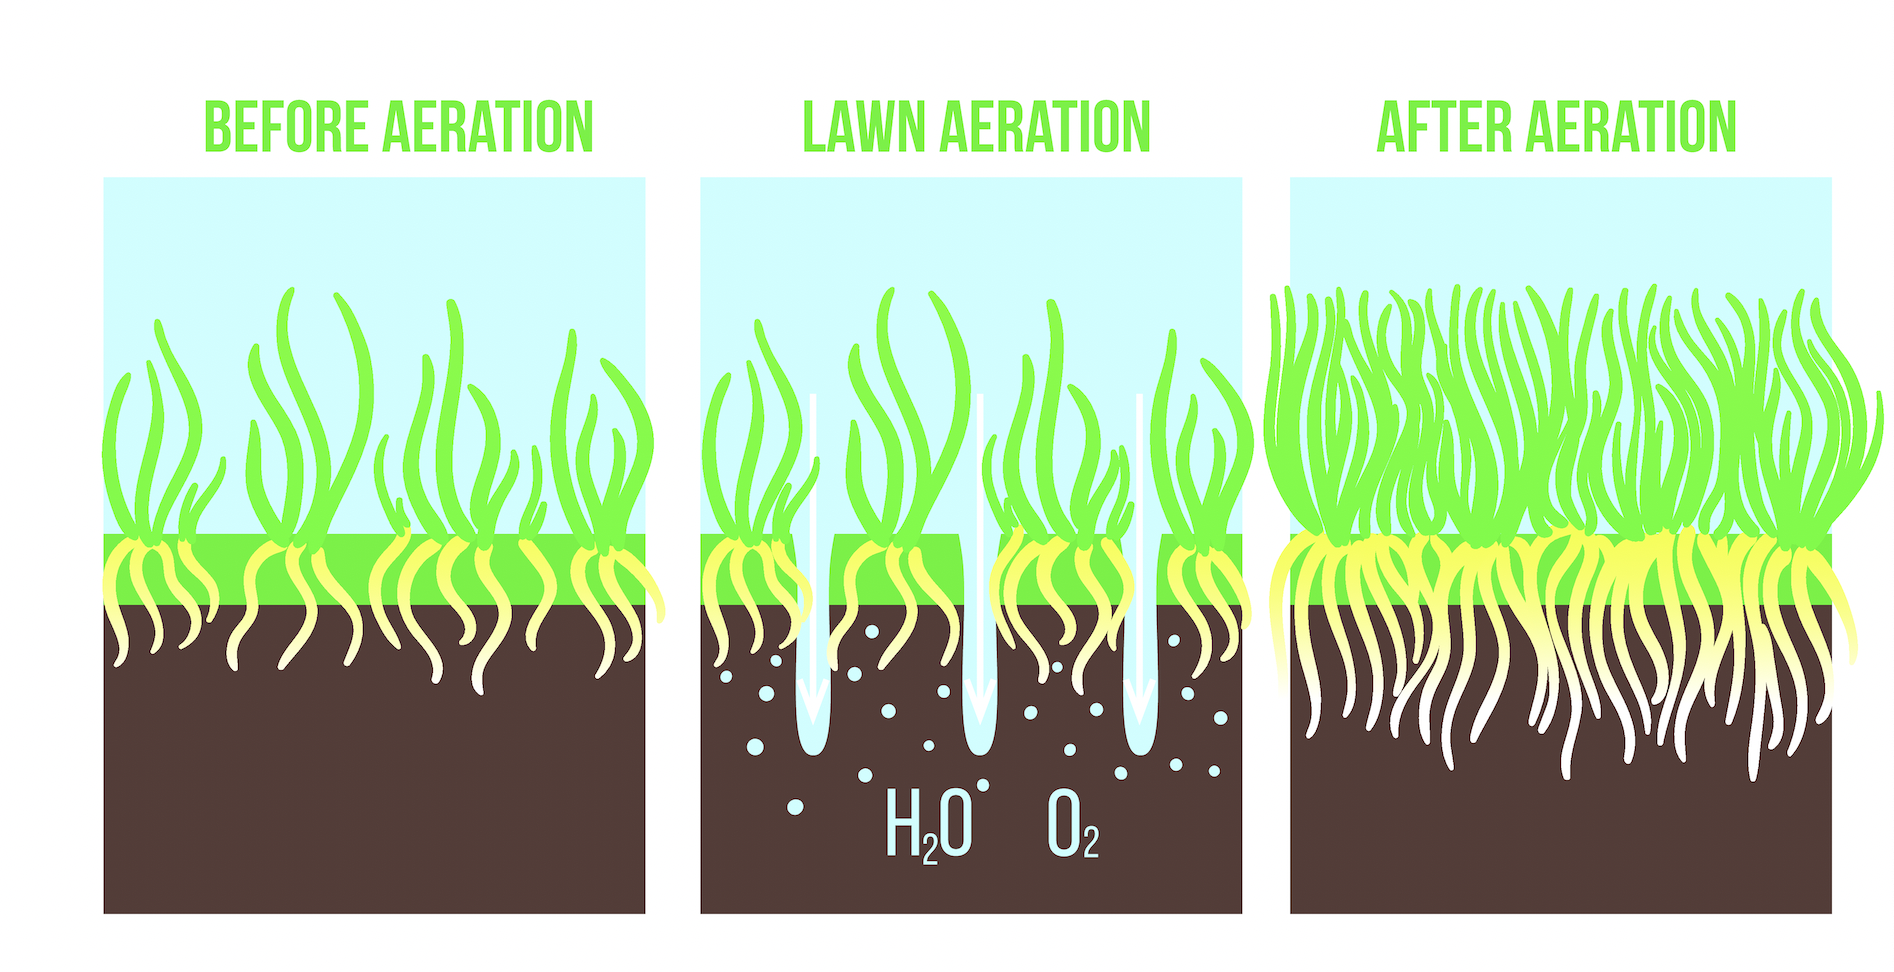 process-lawn-aeration